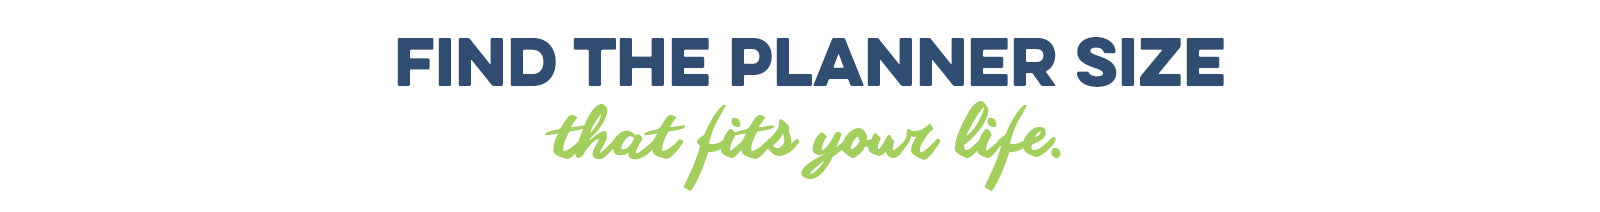 Find the planner size that fits your life.